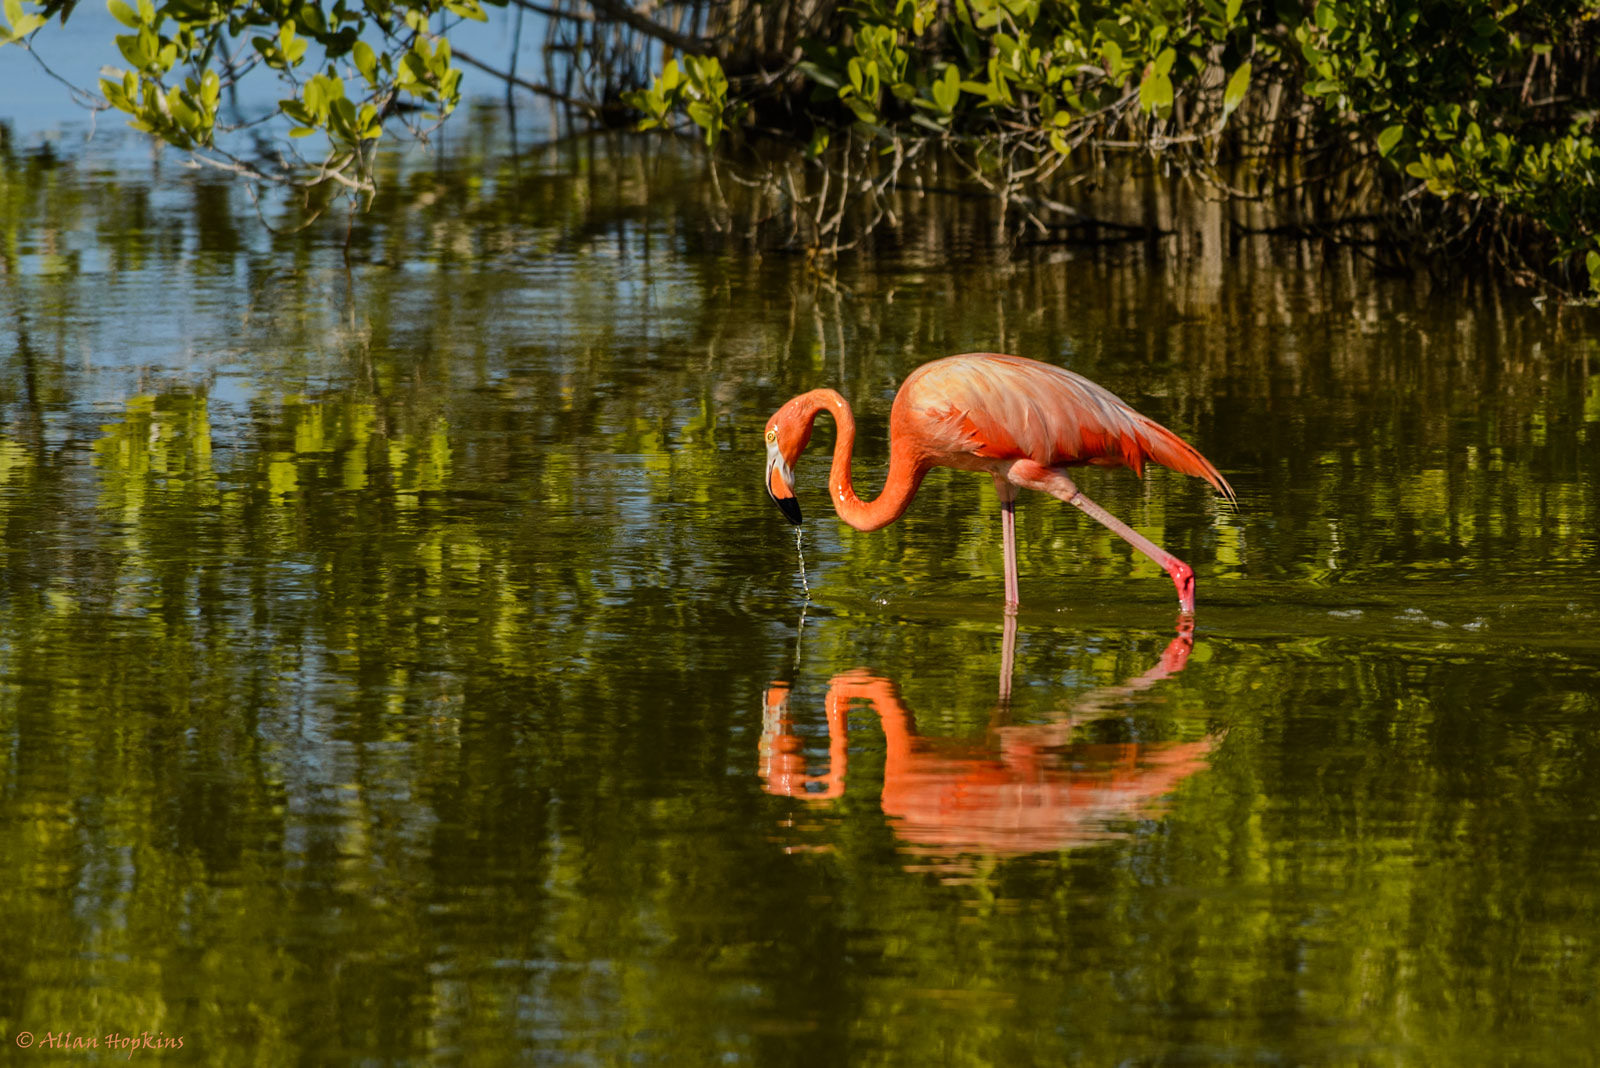 "A flamingo in Cuba's northern keys, where thousands of flamingos were found dead after Irma's landfall. Lisa Sorenson, of BirdsCaribbean, explained that long-legged waders such as flamingos are especially vulnerable to hurricanes, as they are ""pretty defenseless in a storm."" Photo credit: Allan Hopkins/via Flickr [licensed under CC BY 2.0]"